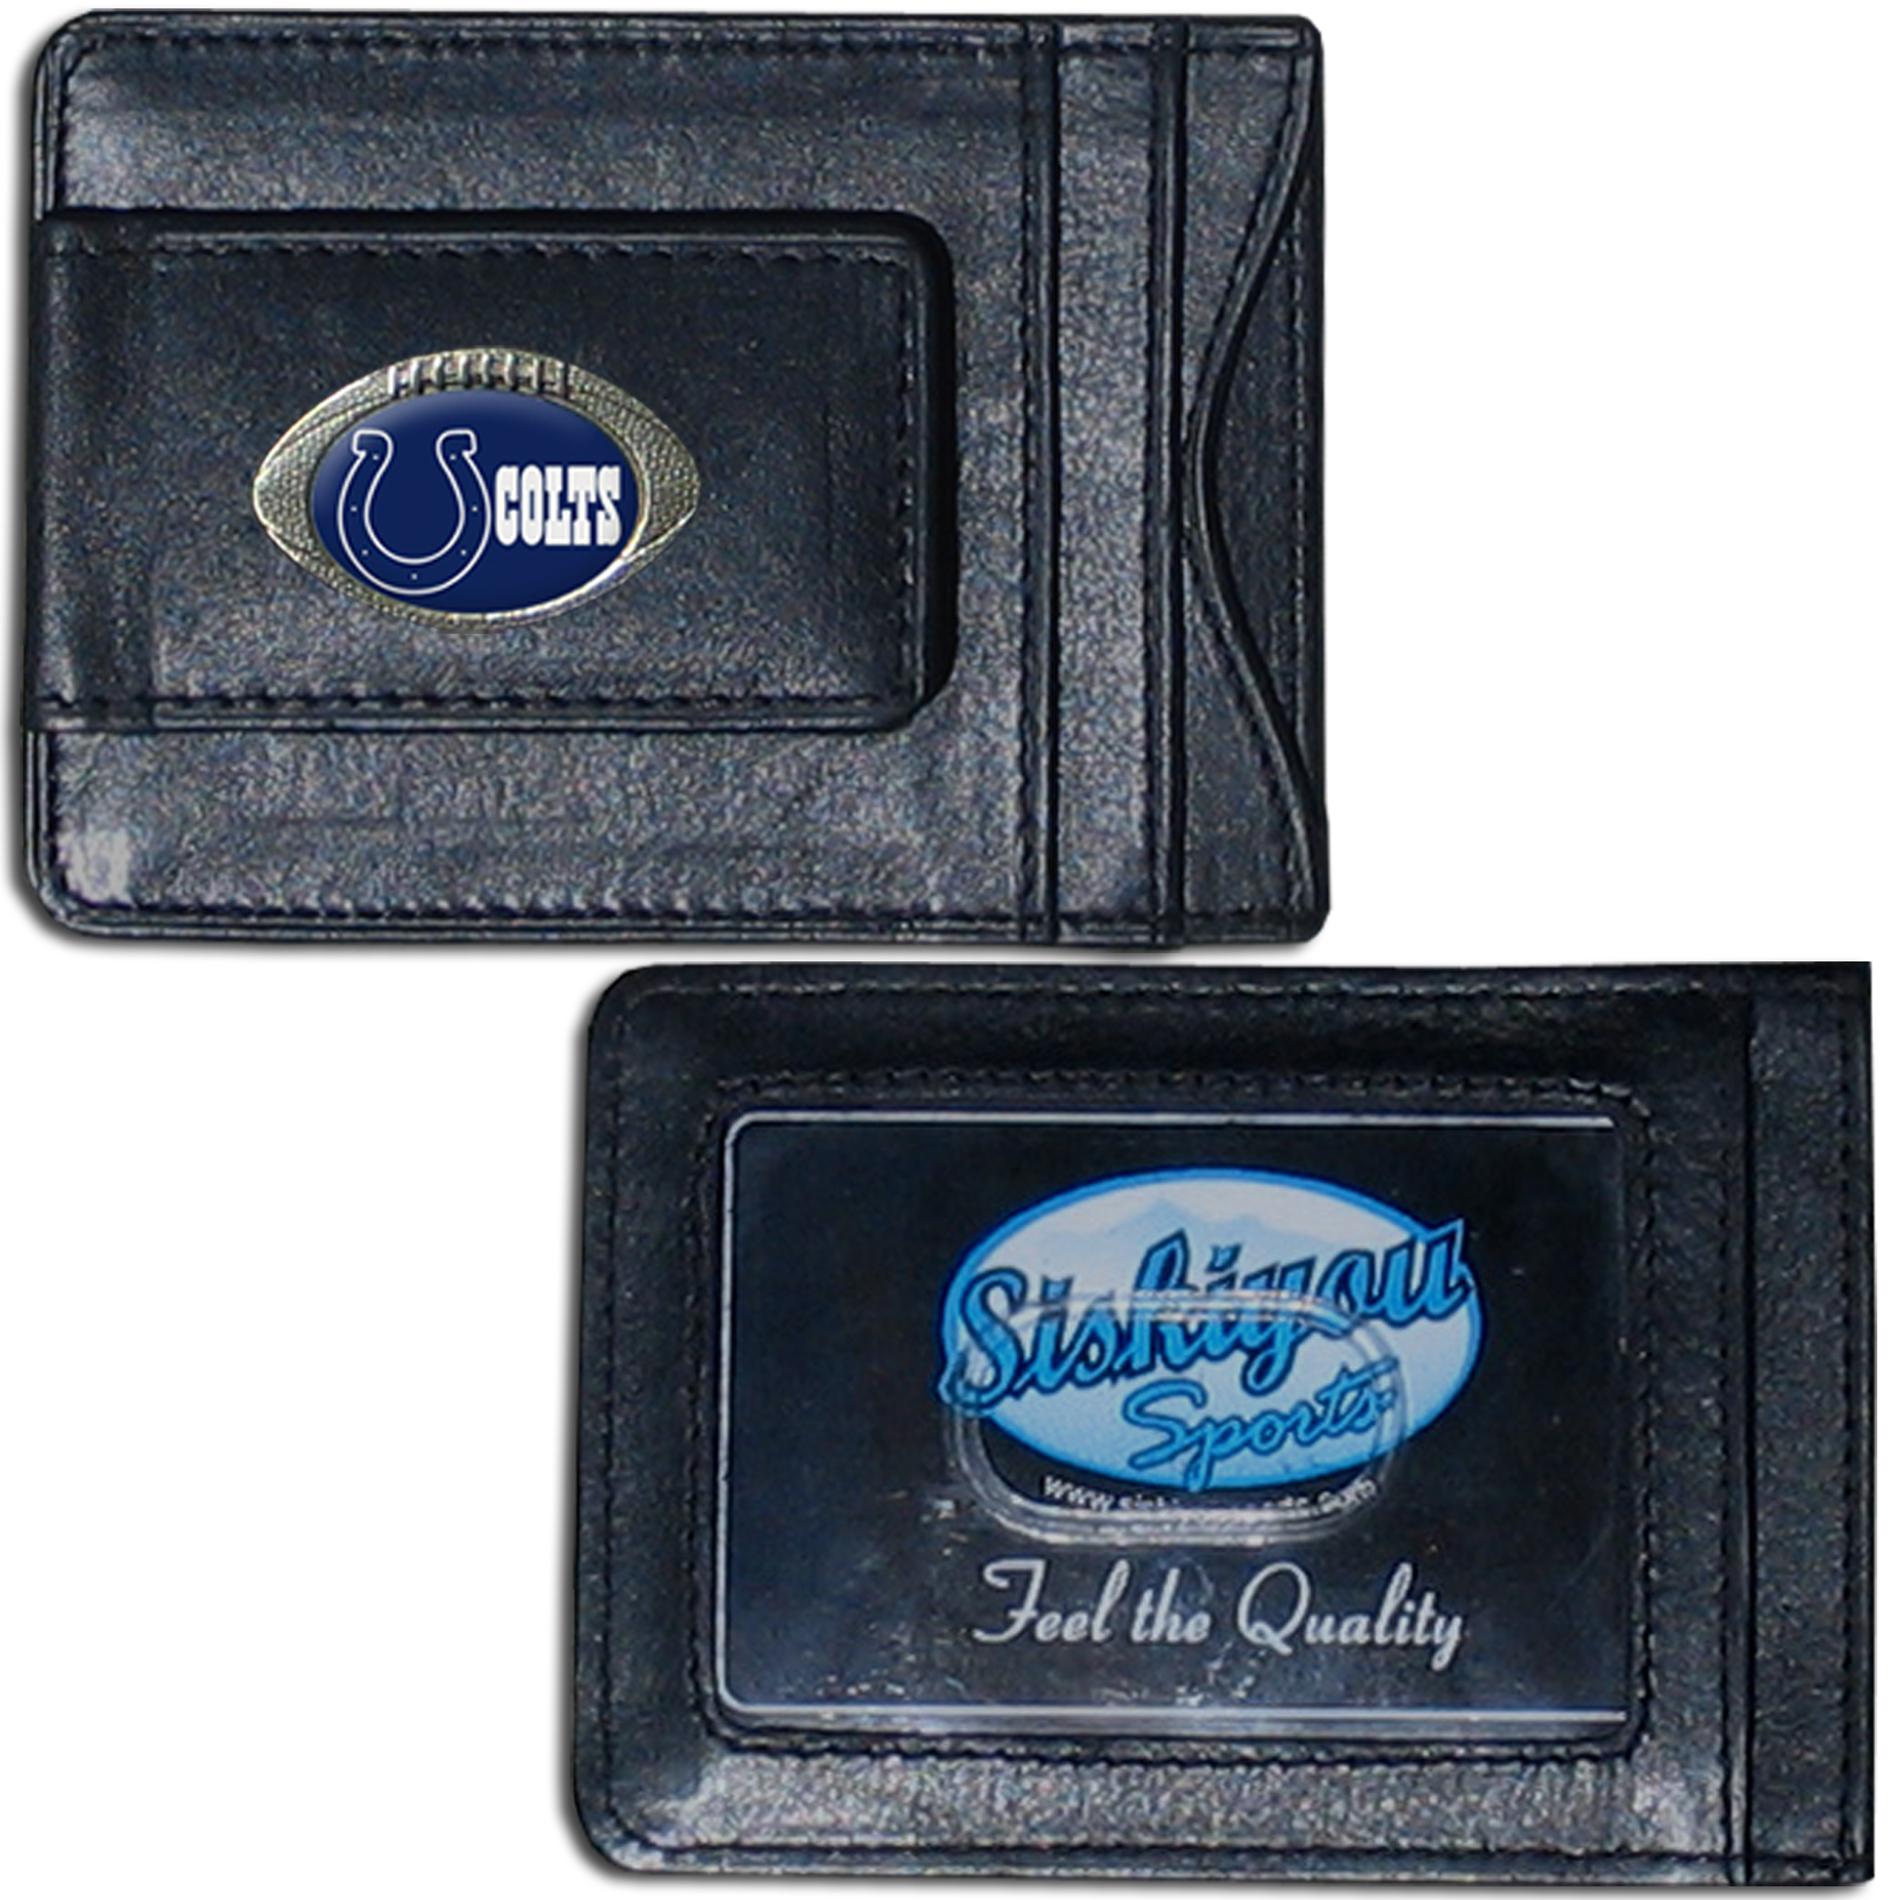 Indianapolis Colts NFL Magnetic Money Clip and Card Holder